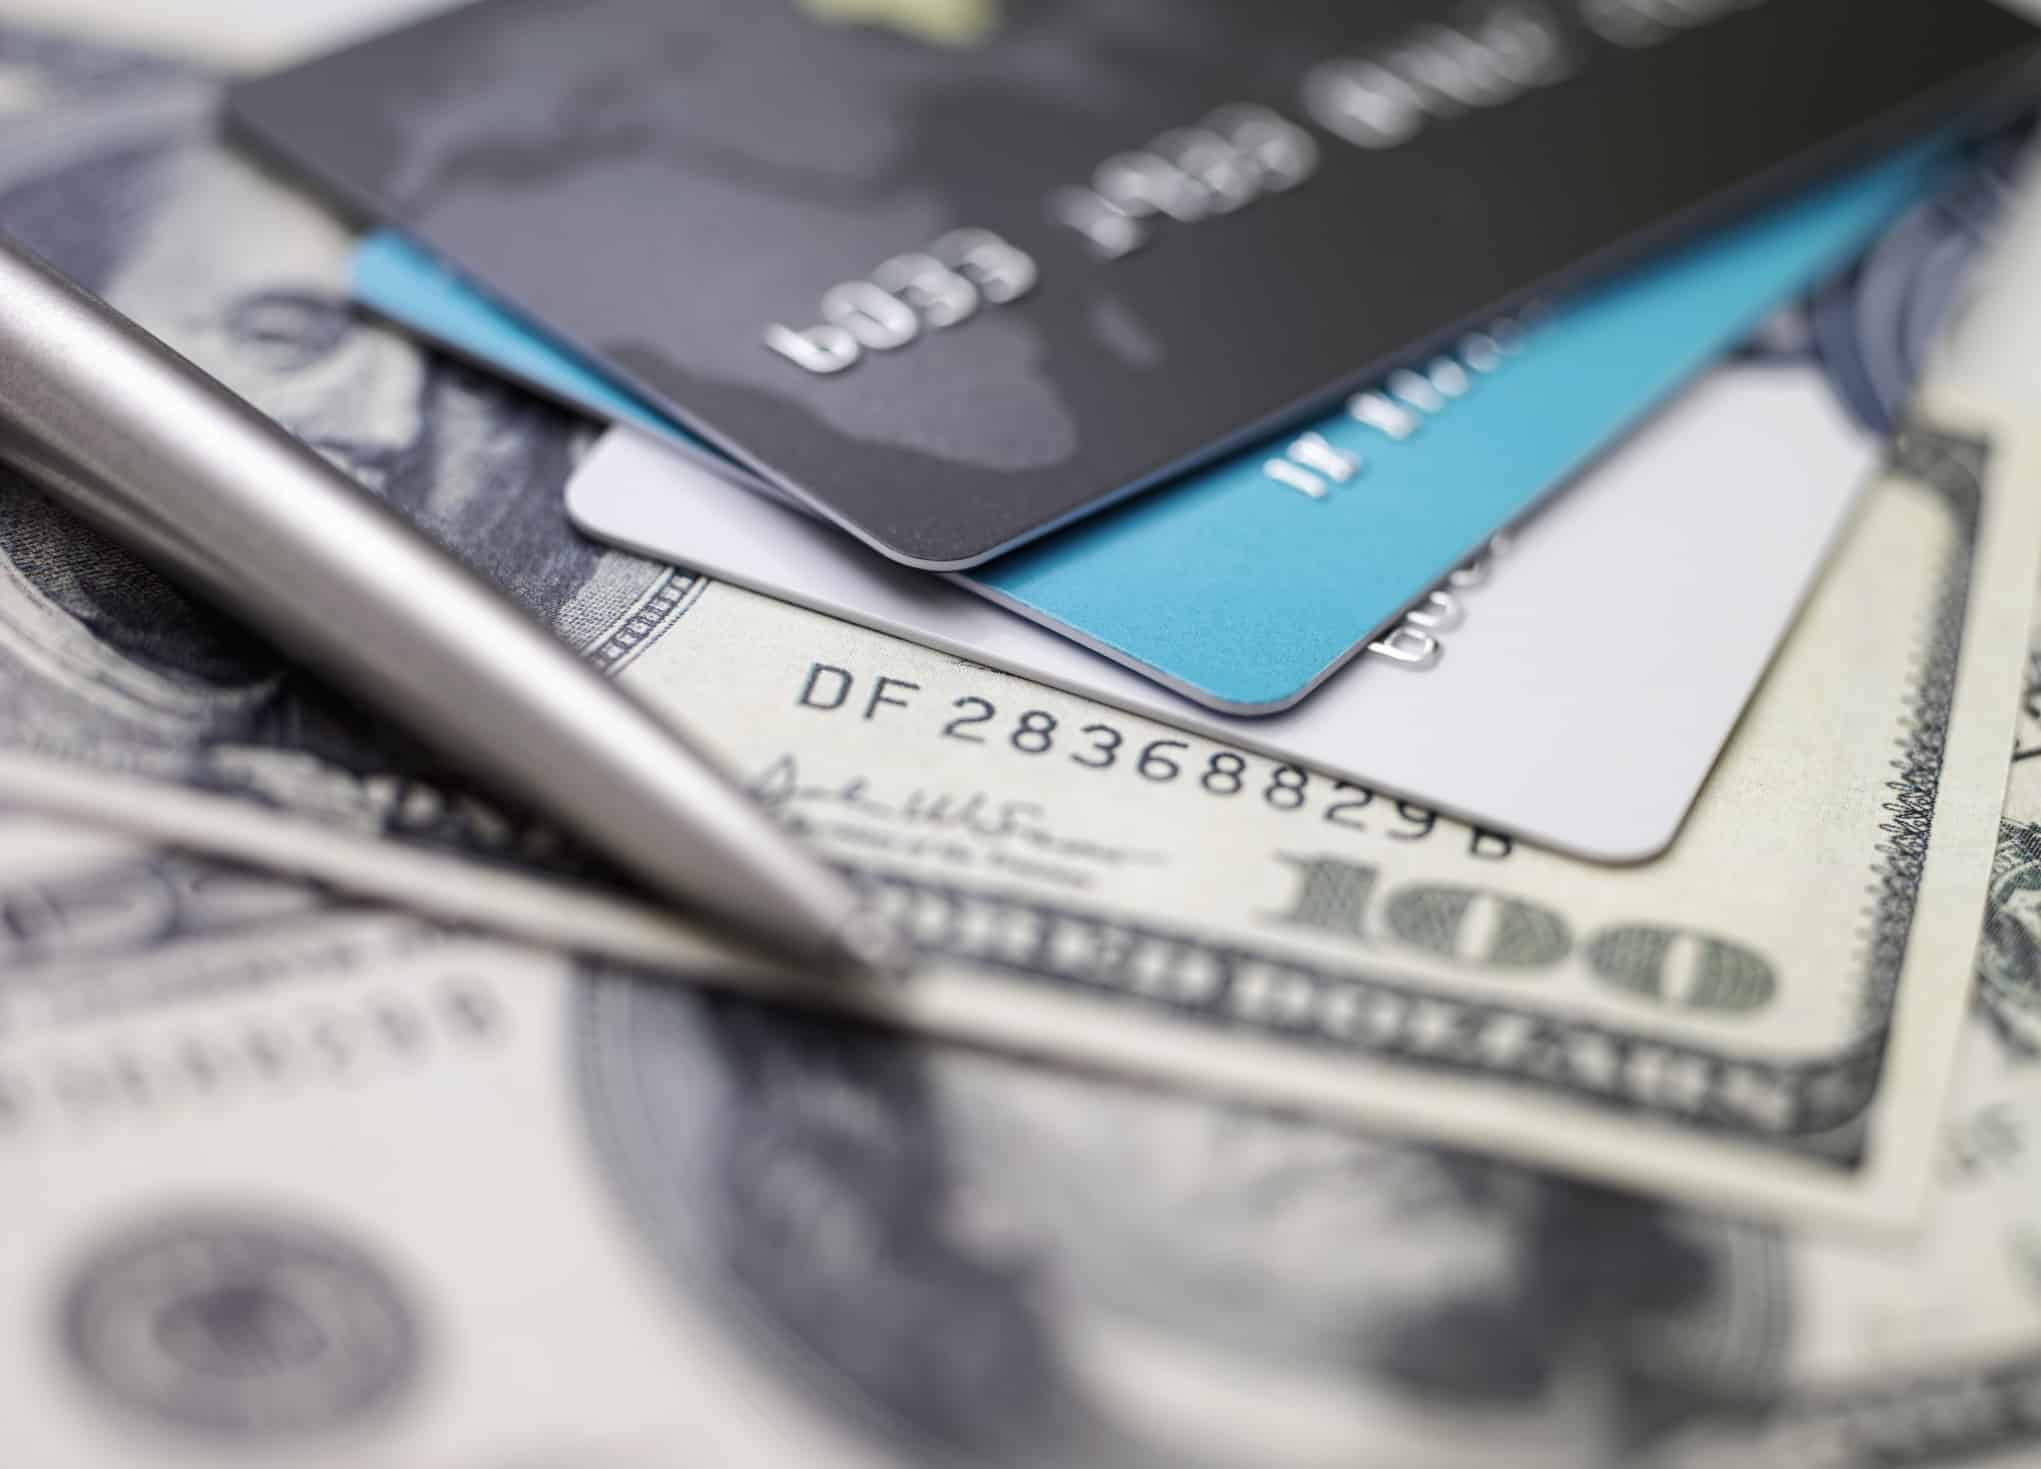 Picture of Credit Cards and Cash underneath